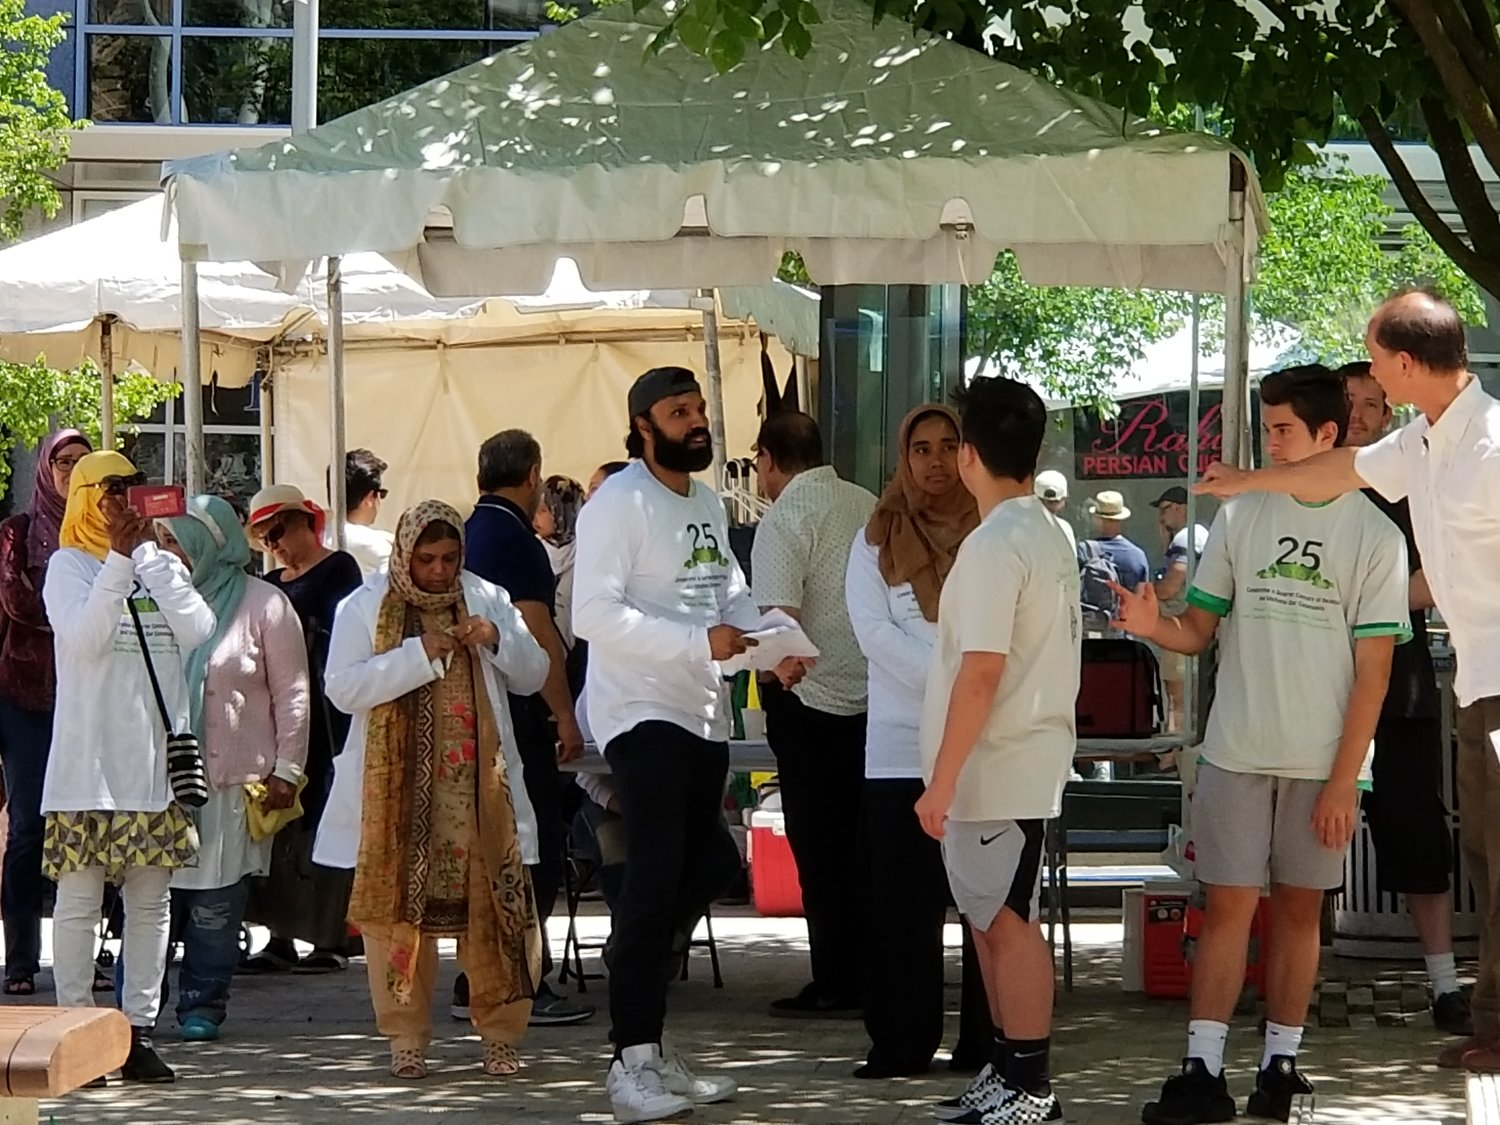 International Muslim Cultural Festival - July 14, 2018 at Director's Park. Click here for photos.